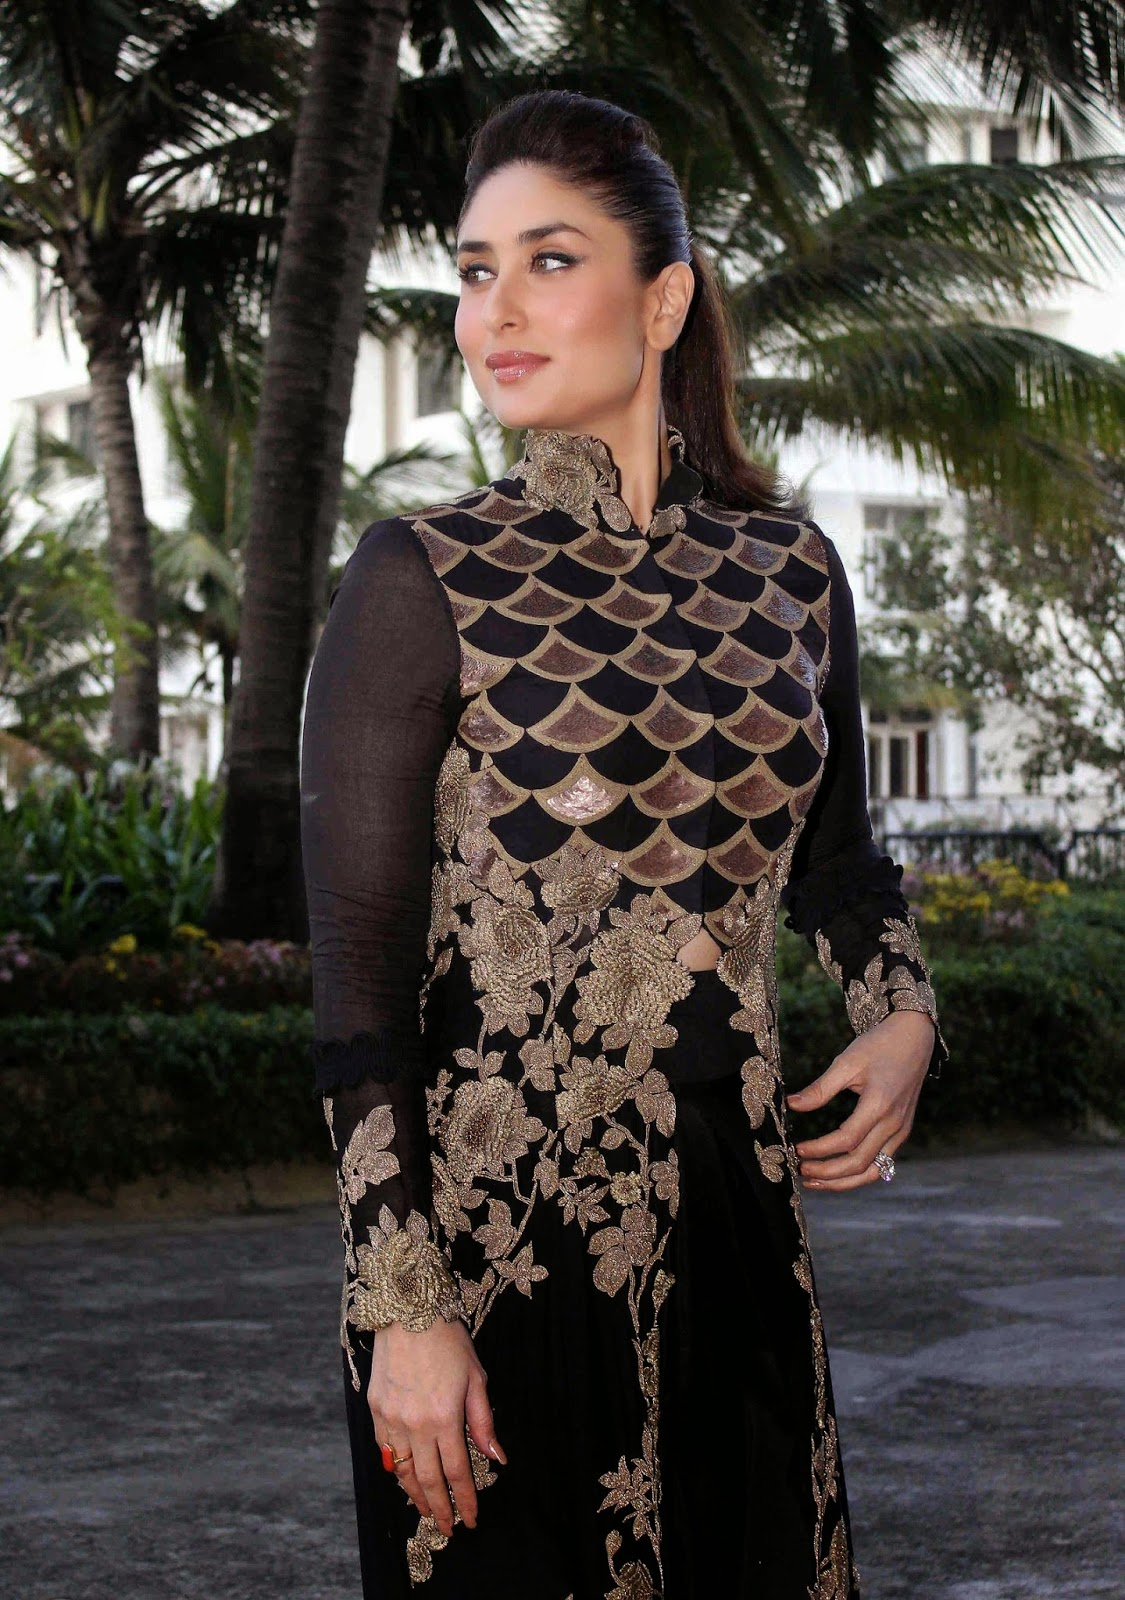 High Quality Bollywood Celebrity Pictures Kareena Kapoor -4203